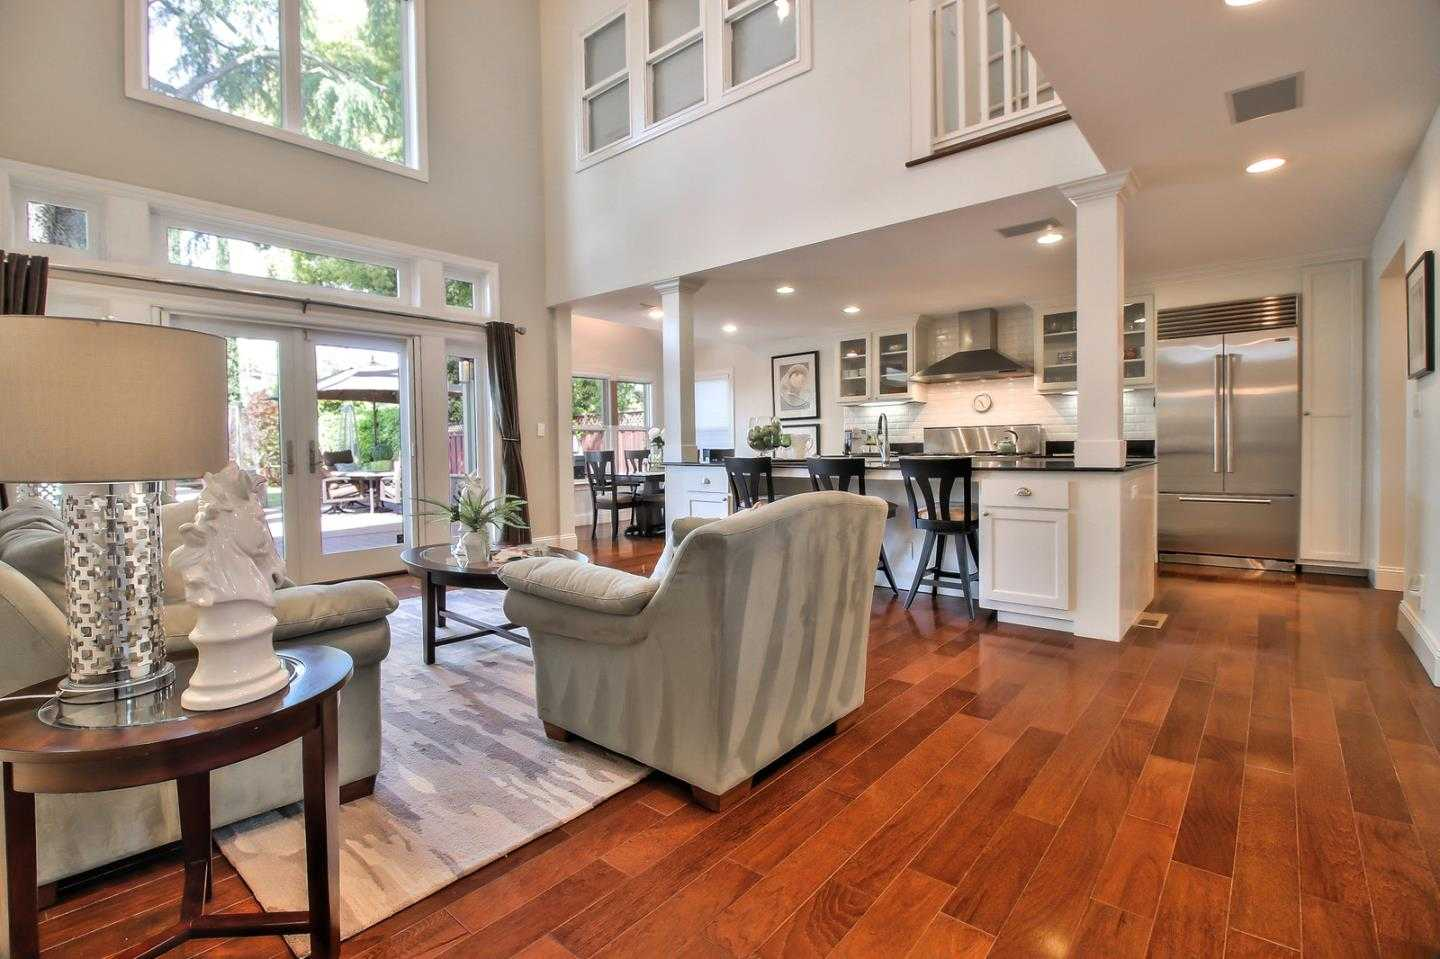 $2,300,000 - 4Br/4Ba -  for Sale in San Jose